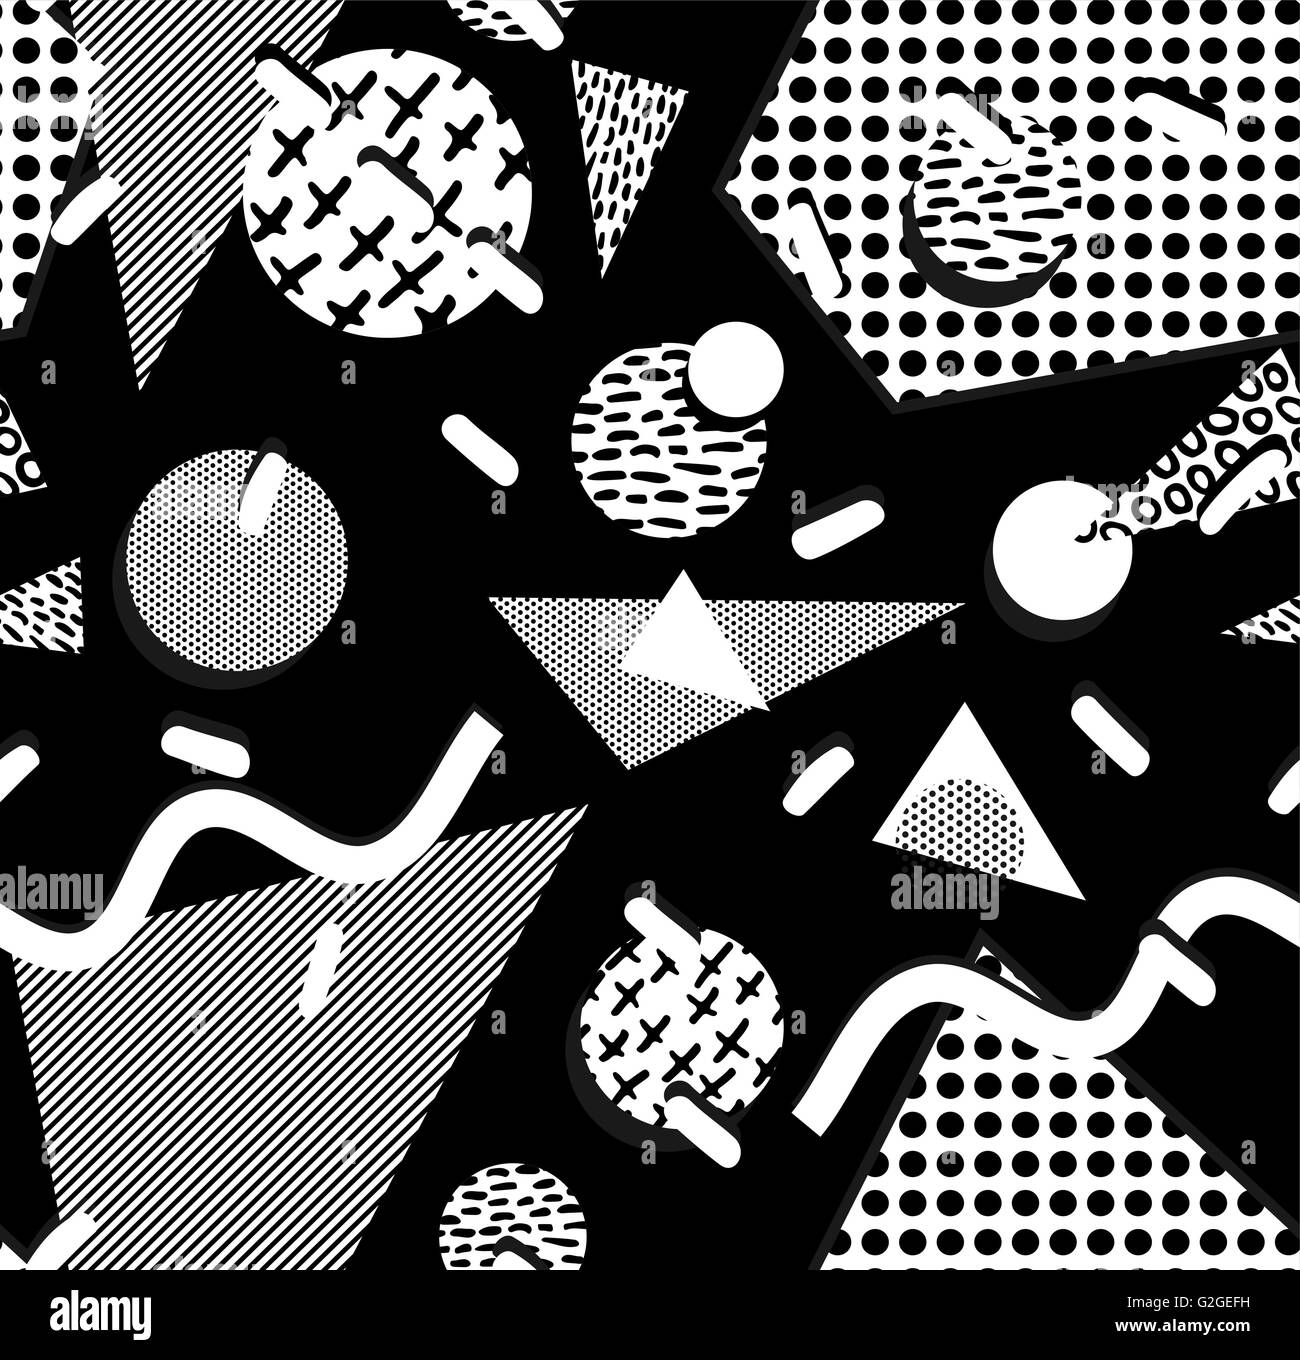 Black and white retro seamless pattern with geometric shapes Stock ... for Geometric Shapes Design Black And White  156eri